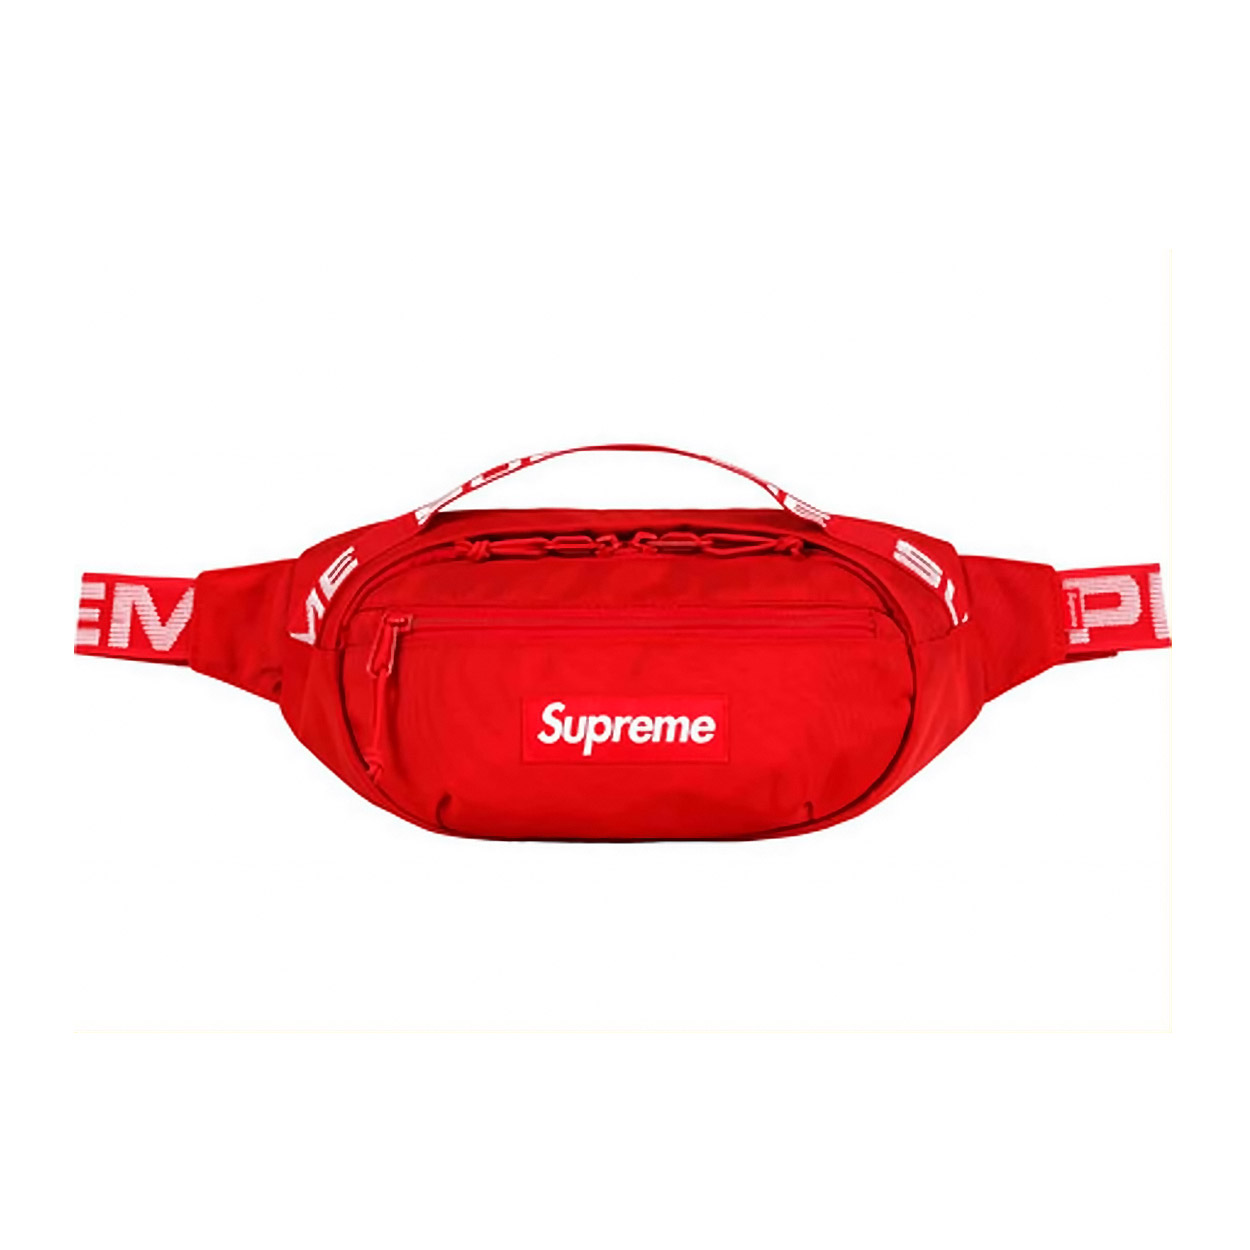 b0f35125f403 Supreme SS18 Waist Bag Red | Novelship: Buy and Sell Sneakers, Streetwear,  100% Authentic